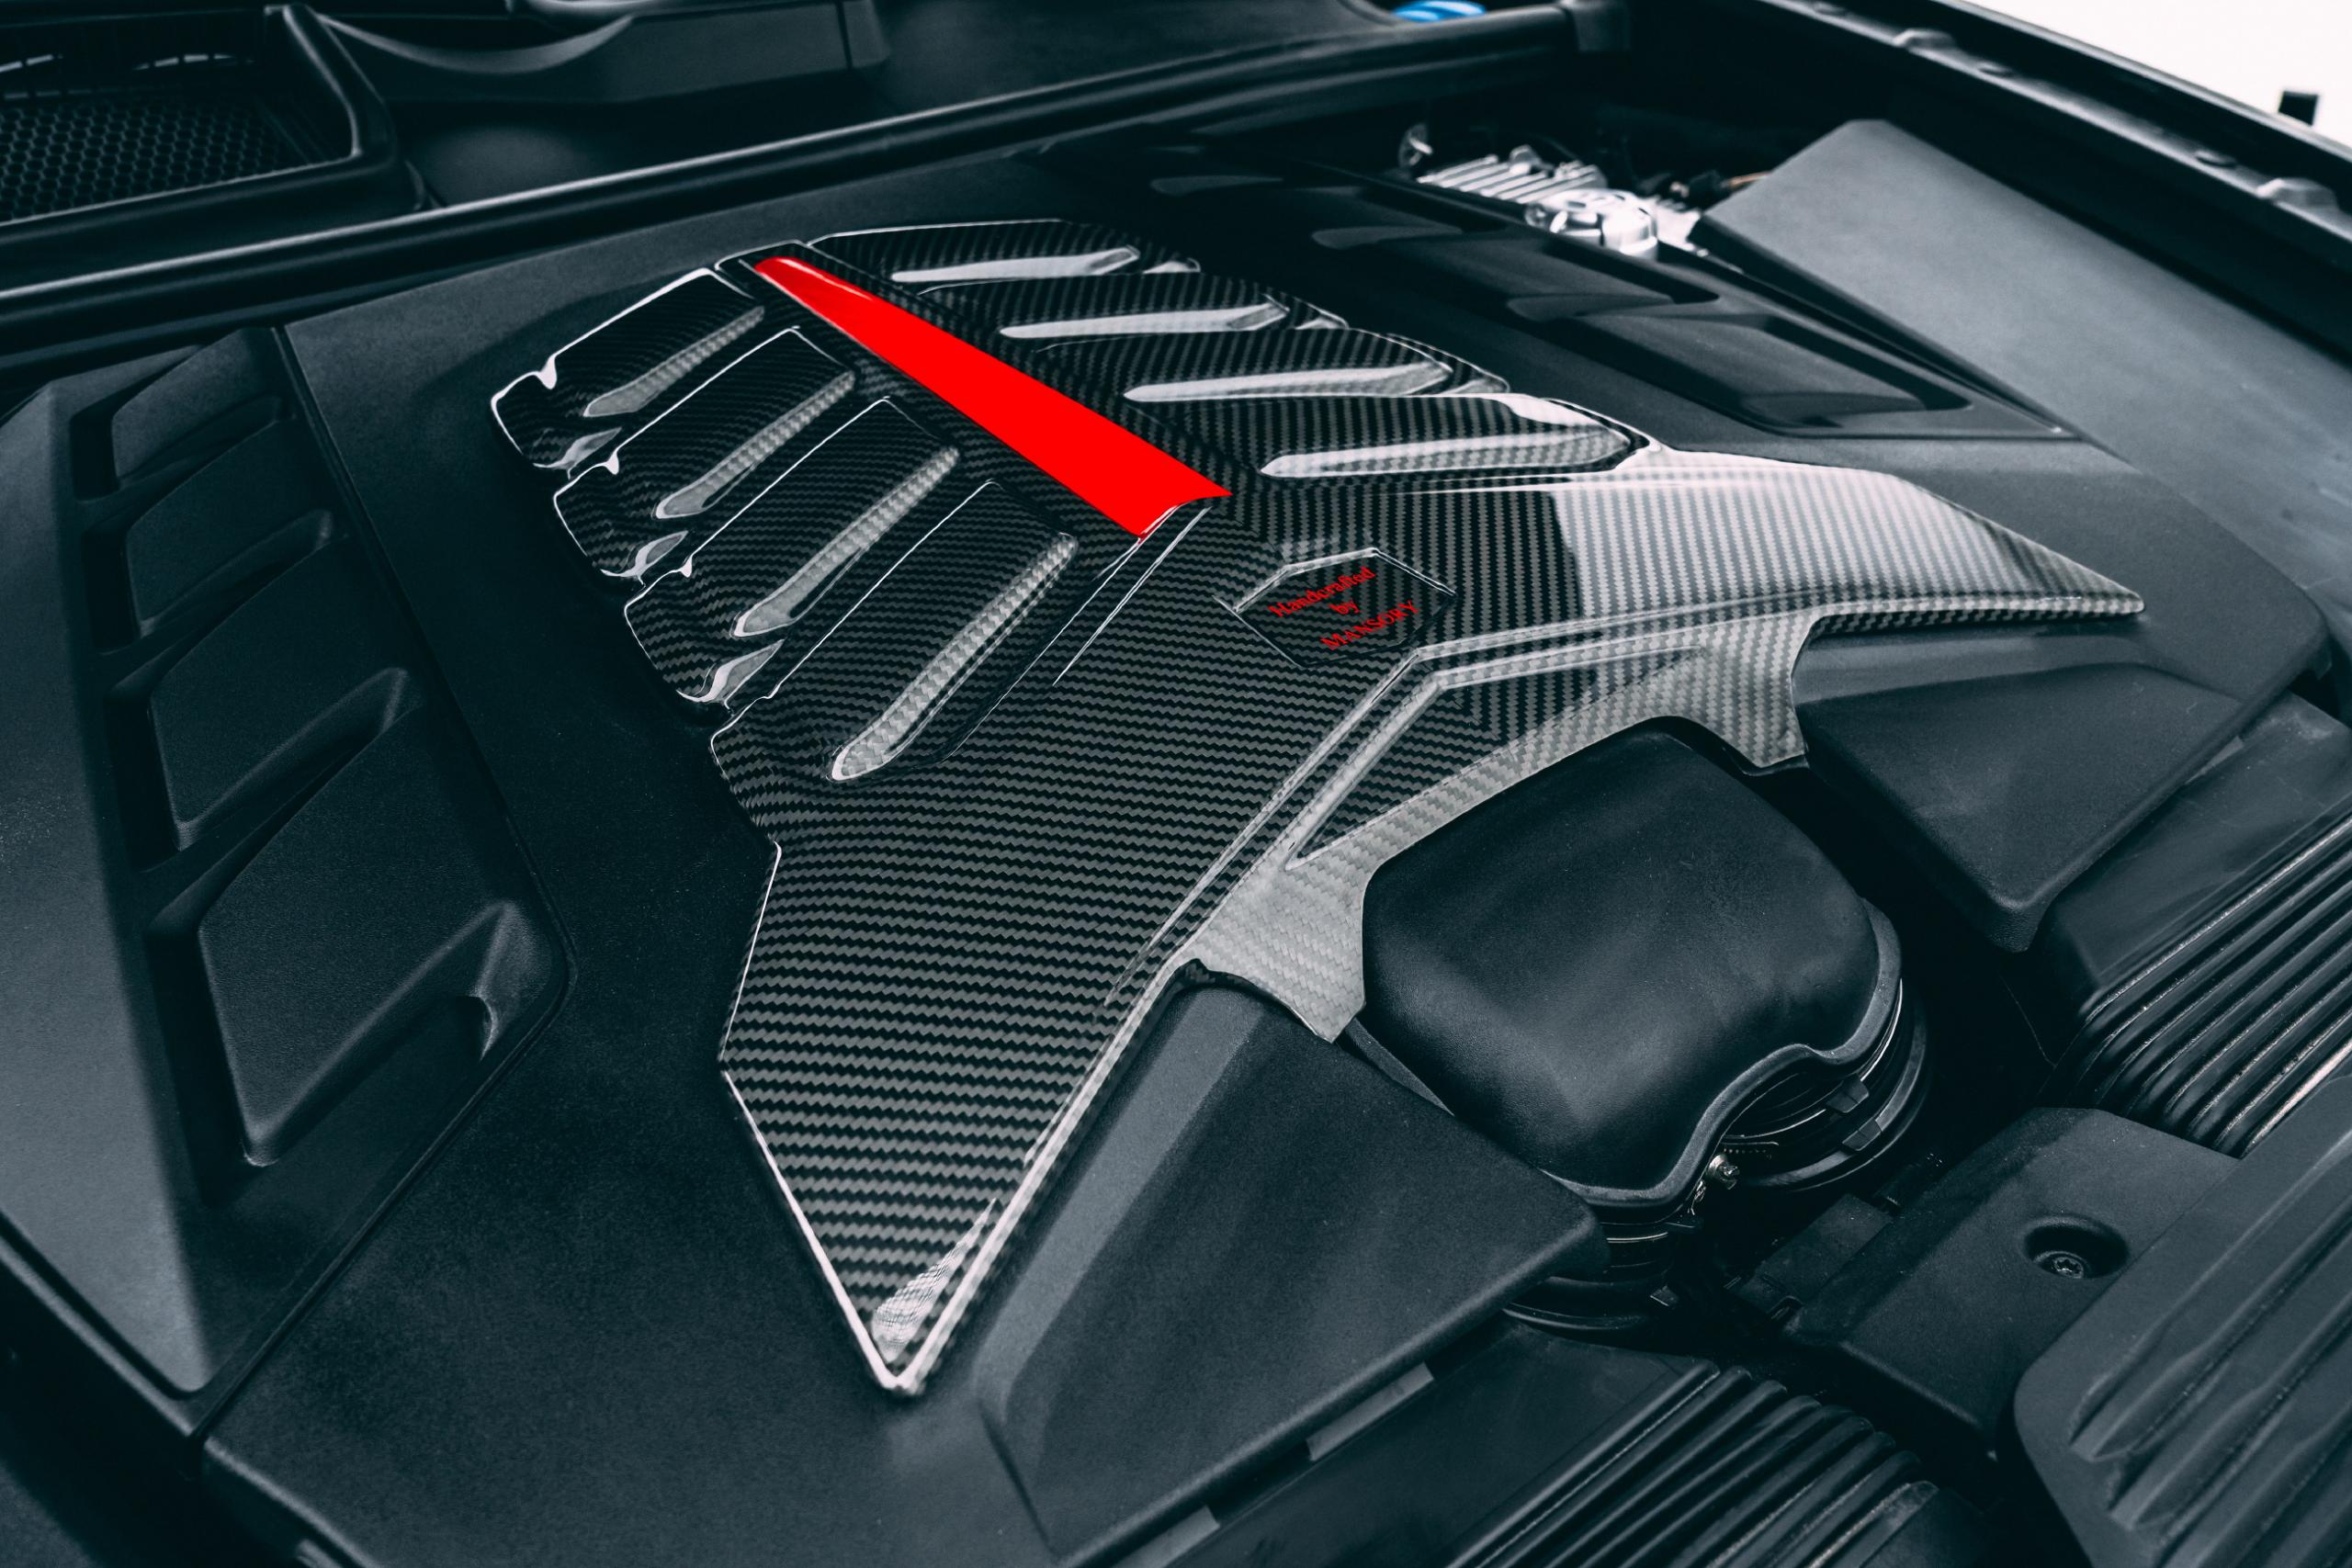 mansory new bentayga wide body kit carbon fiber engine cover performance 2021